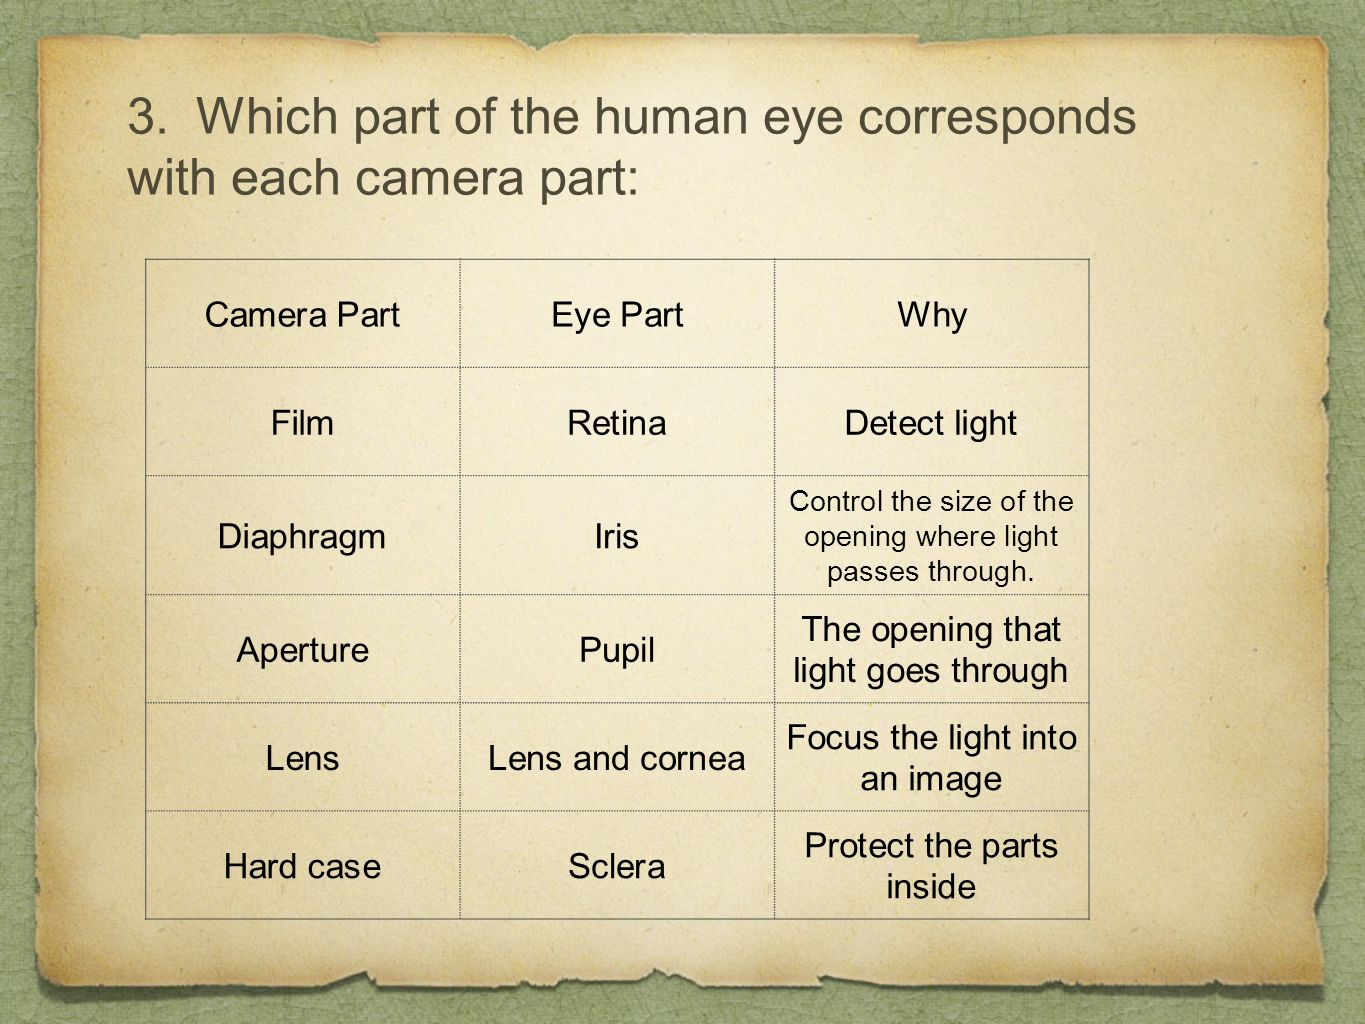 3. Which part of the human eye corresponds with each camera part: